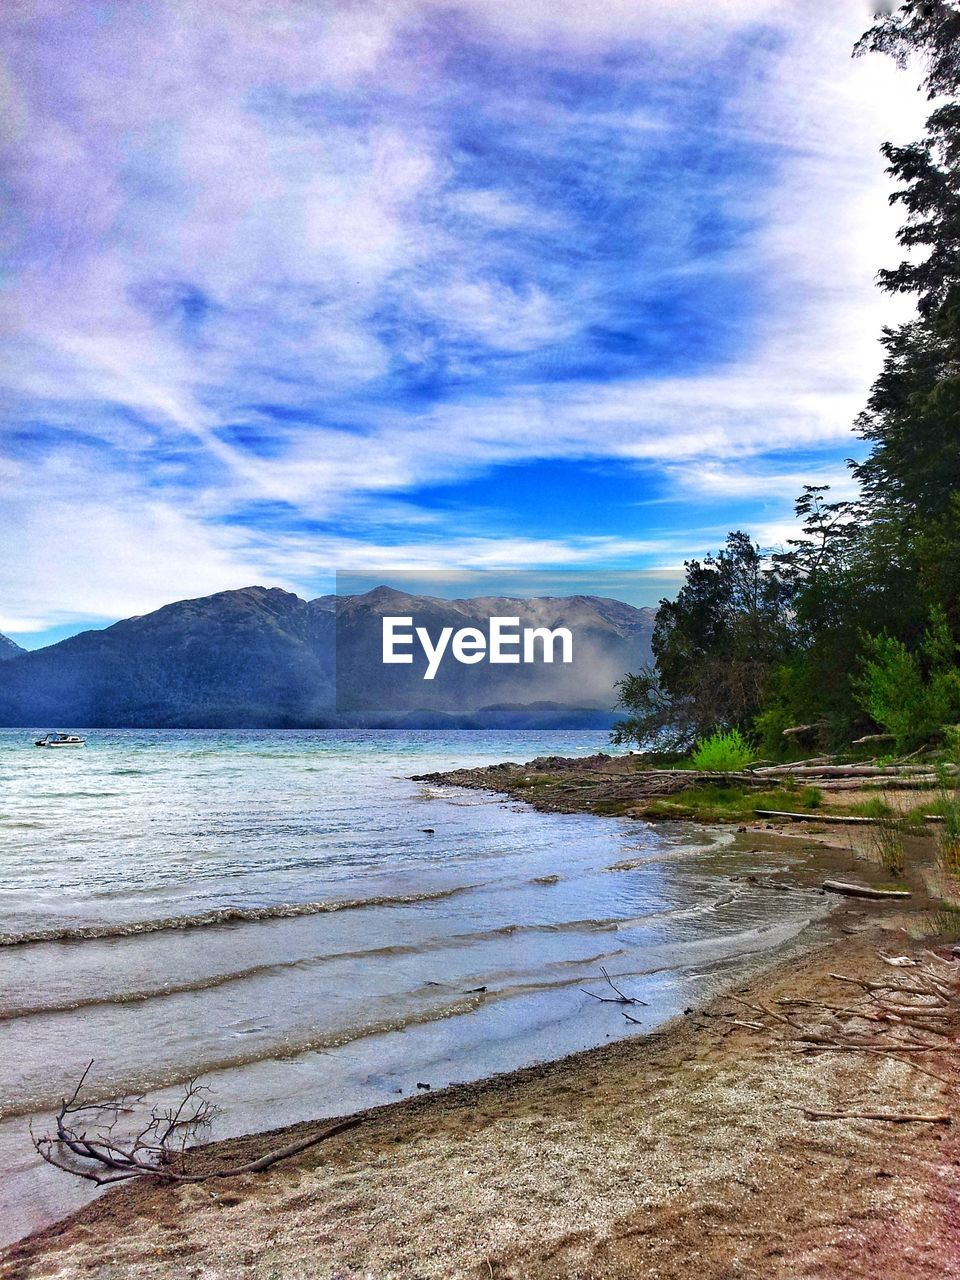 sky, water, scenics, beauty in nature, sea, nature, tranquility, cloud - sky, no people, tranquil scene, outdoors, tree, beach, landscape, day, mountain